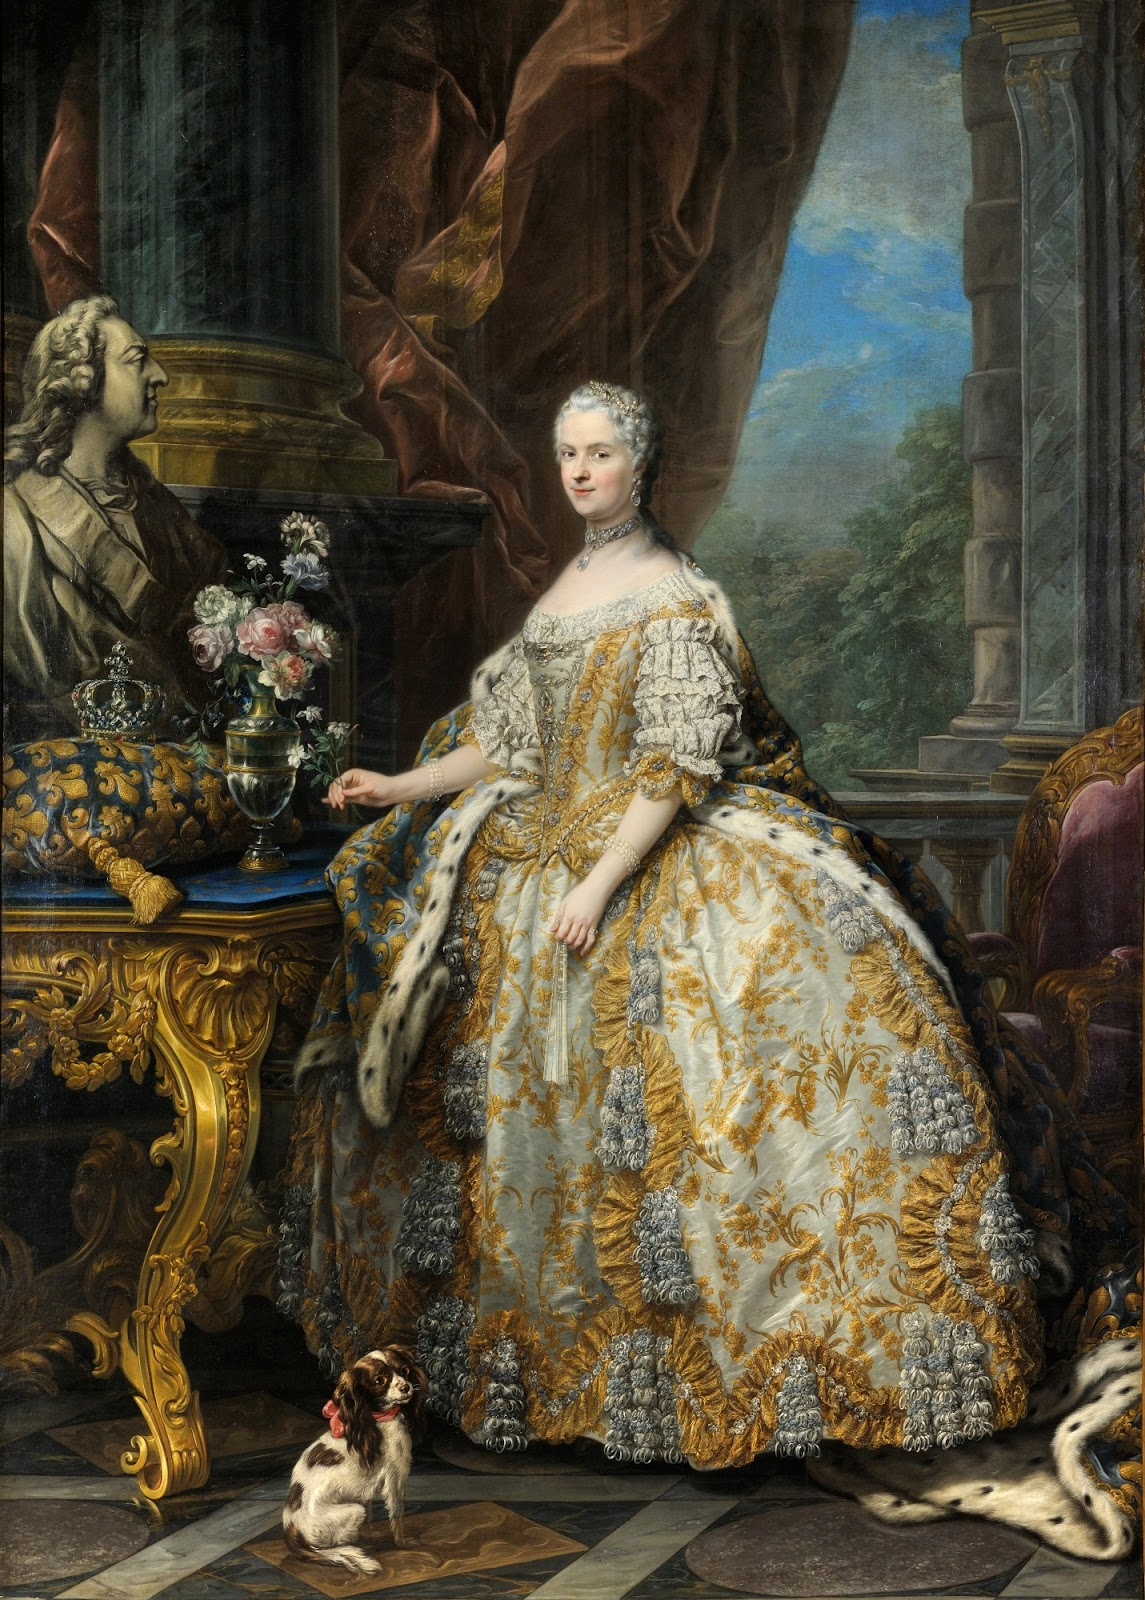 Paintings by Carle van Loo (1705-1765)